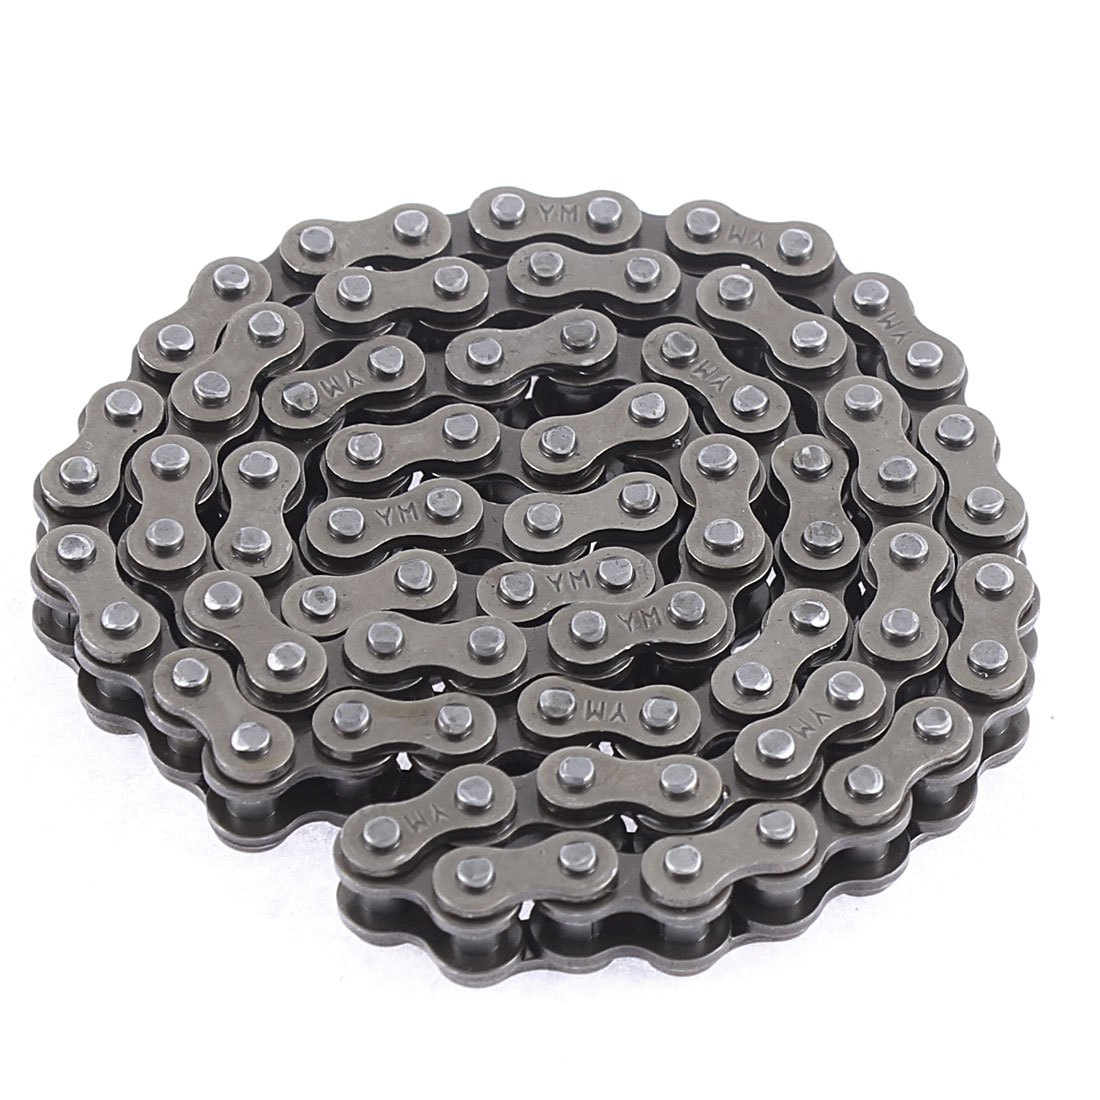 Unique Bargains 82 Links Dark Gray Metal O-Ringroller Drive Timing Chain for Motorcycle Bike